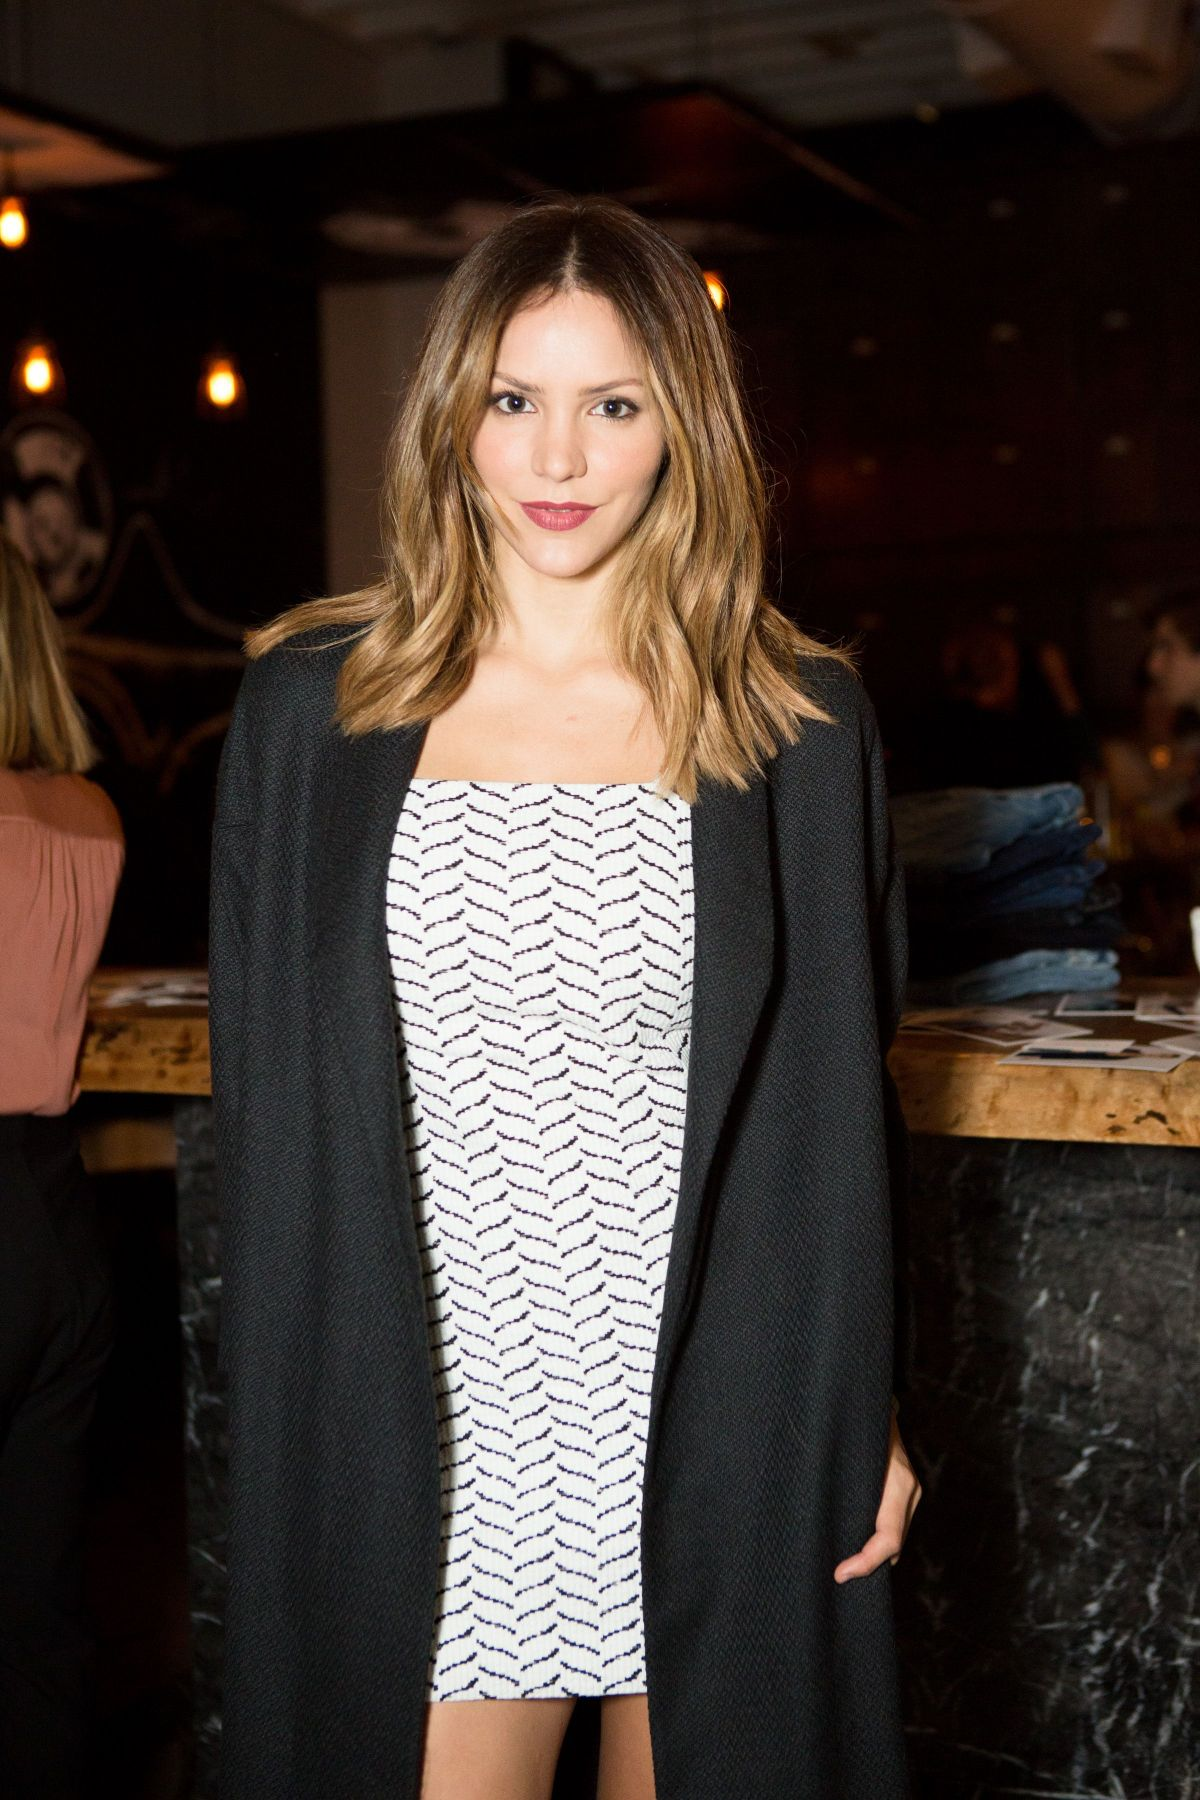 Katharine mcphee at ayr fall collection party in los angeles 08 24